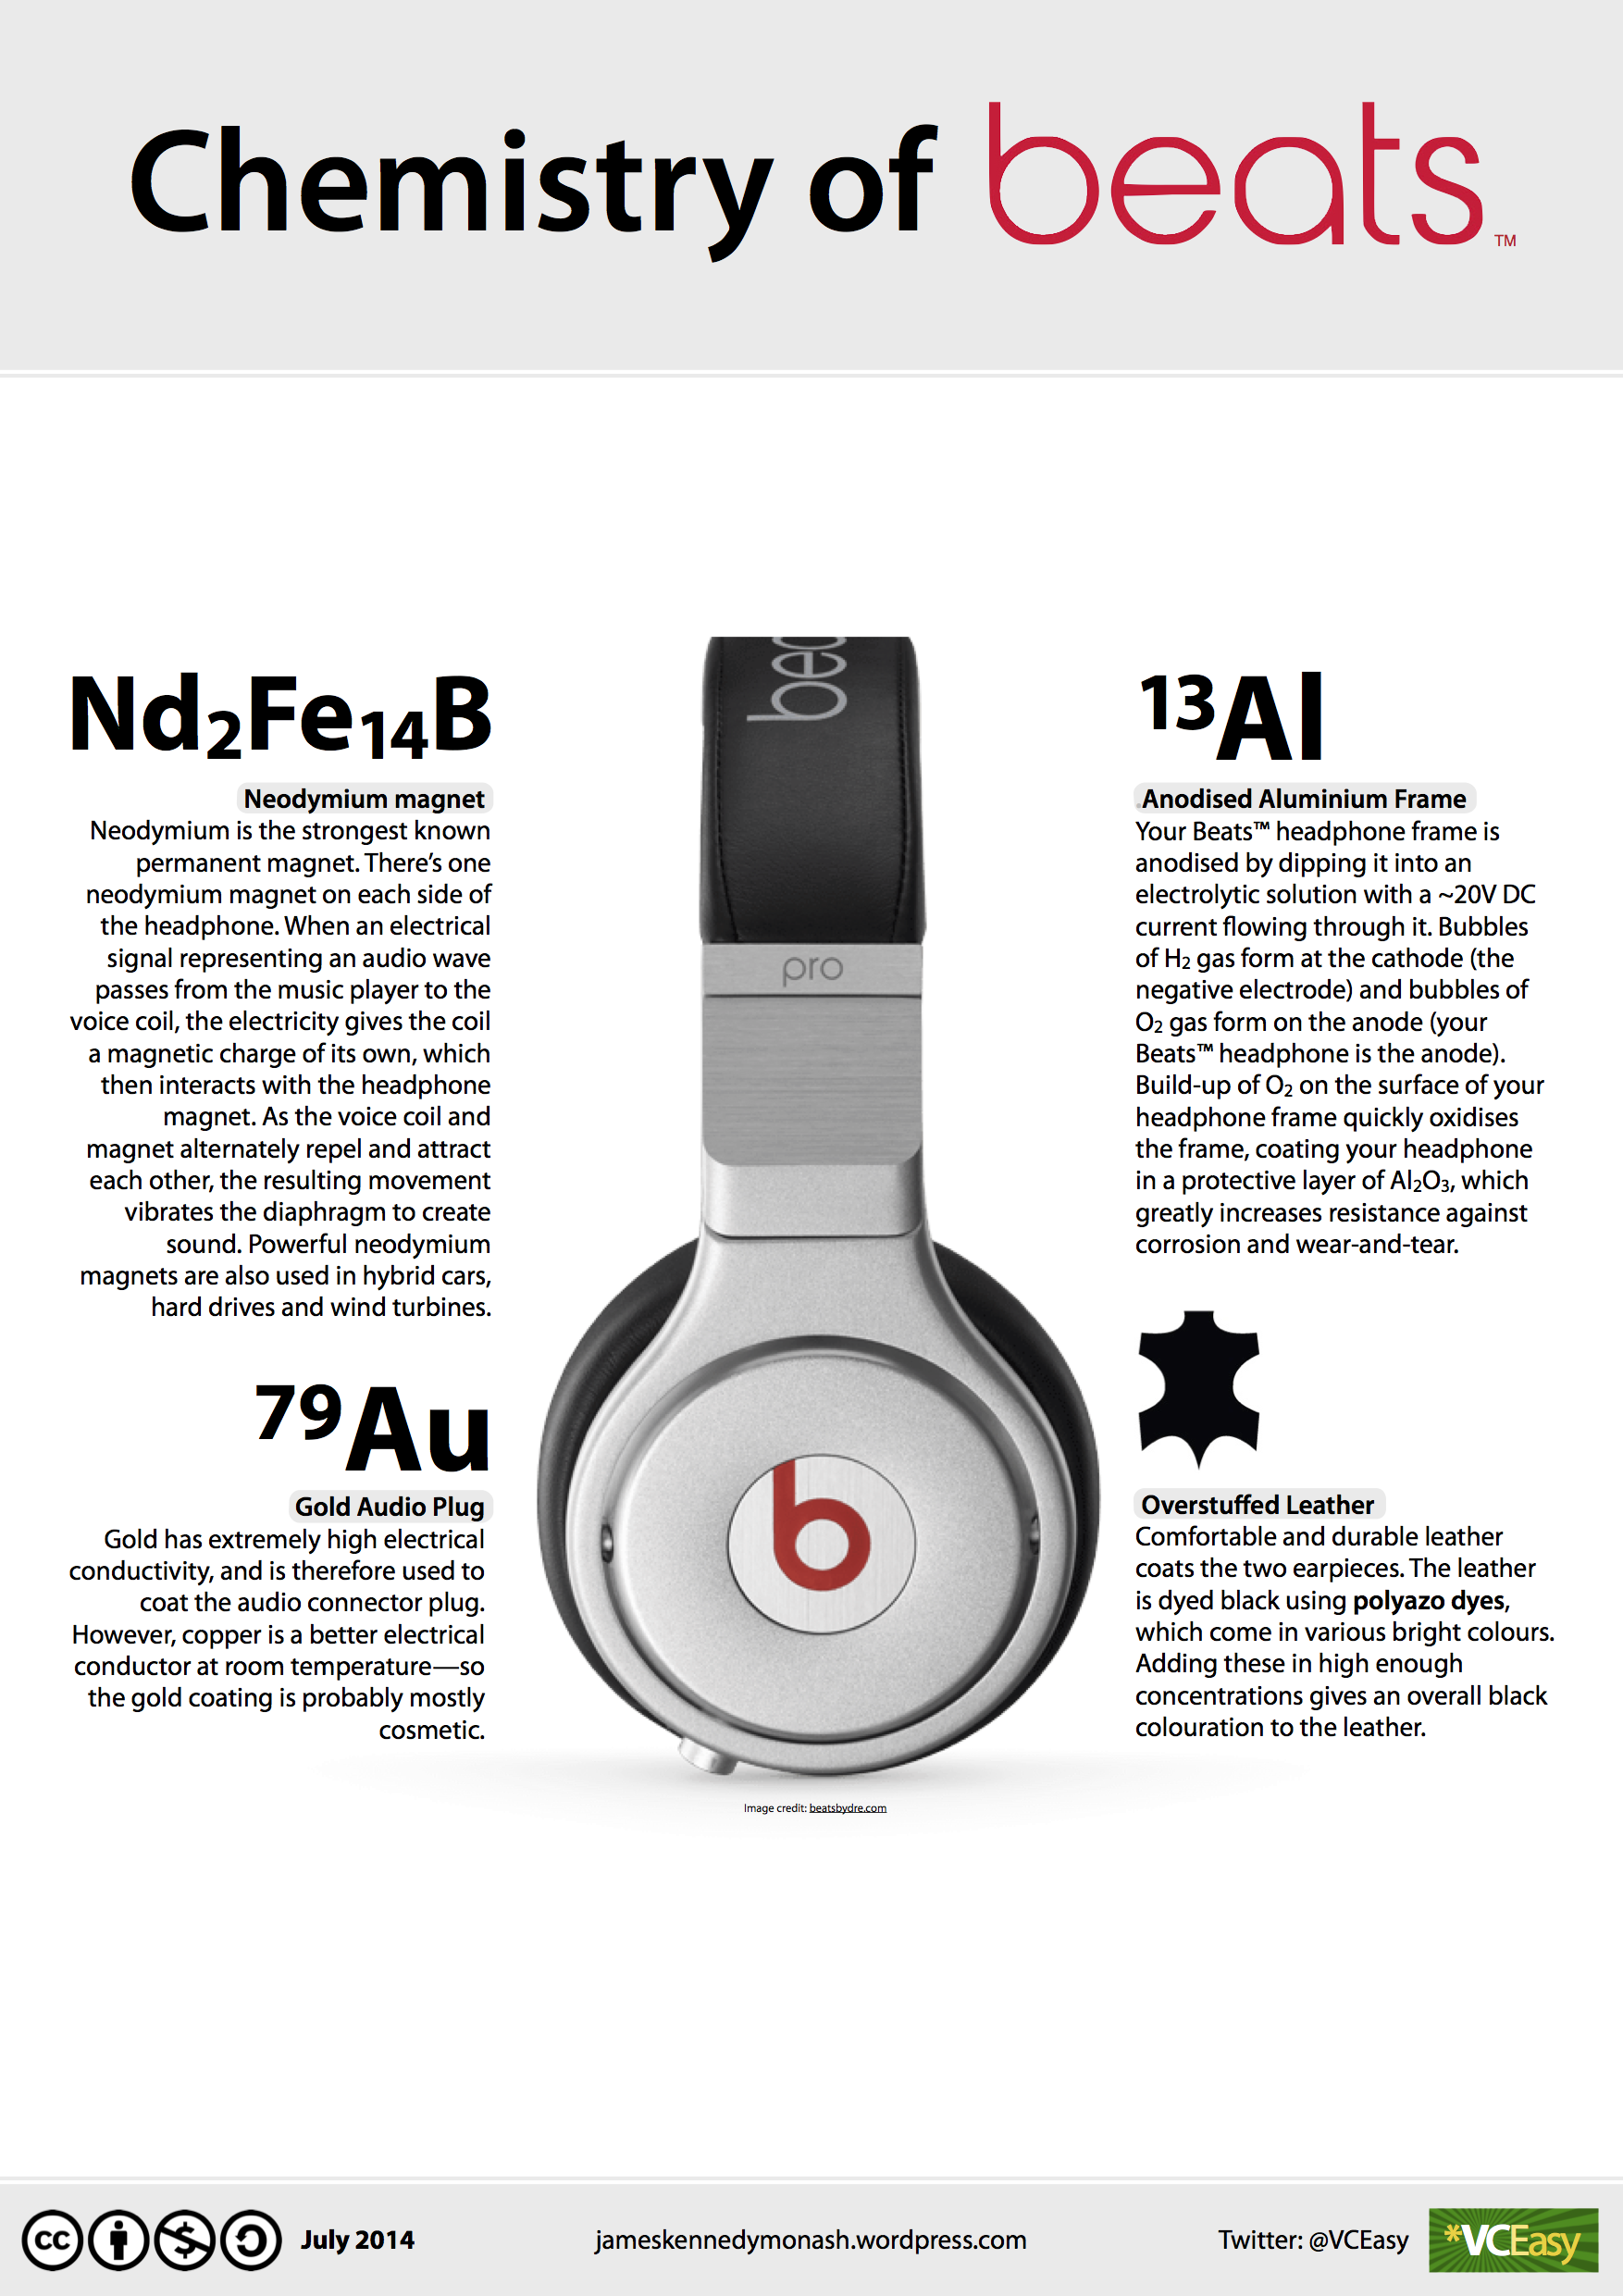 How Do Headphones Work  New Infographic  Chemistry Of Beats U00ae